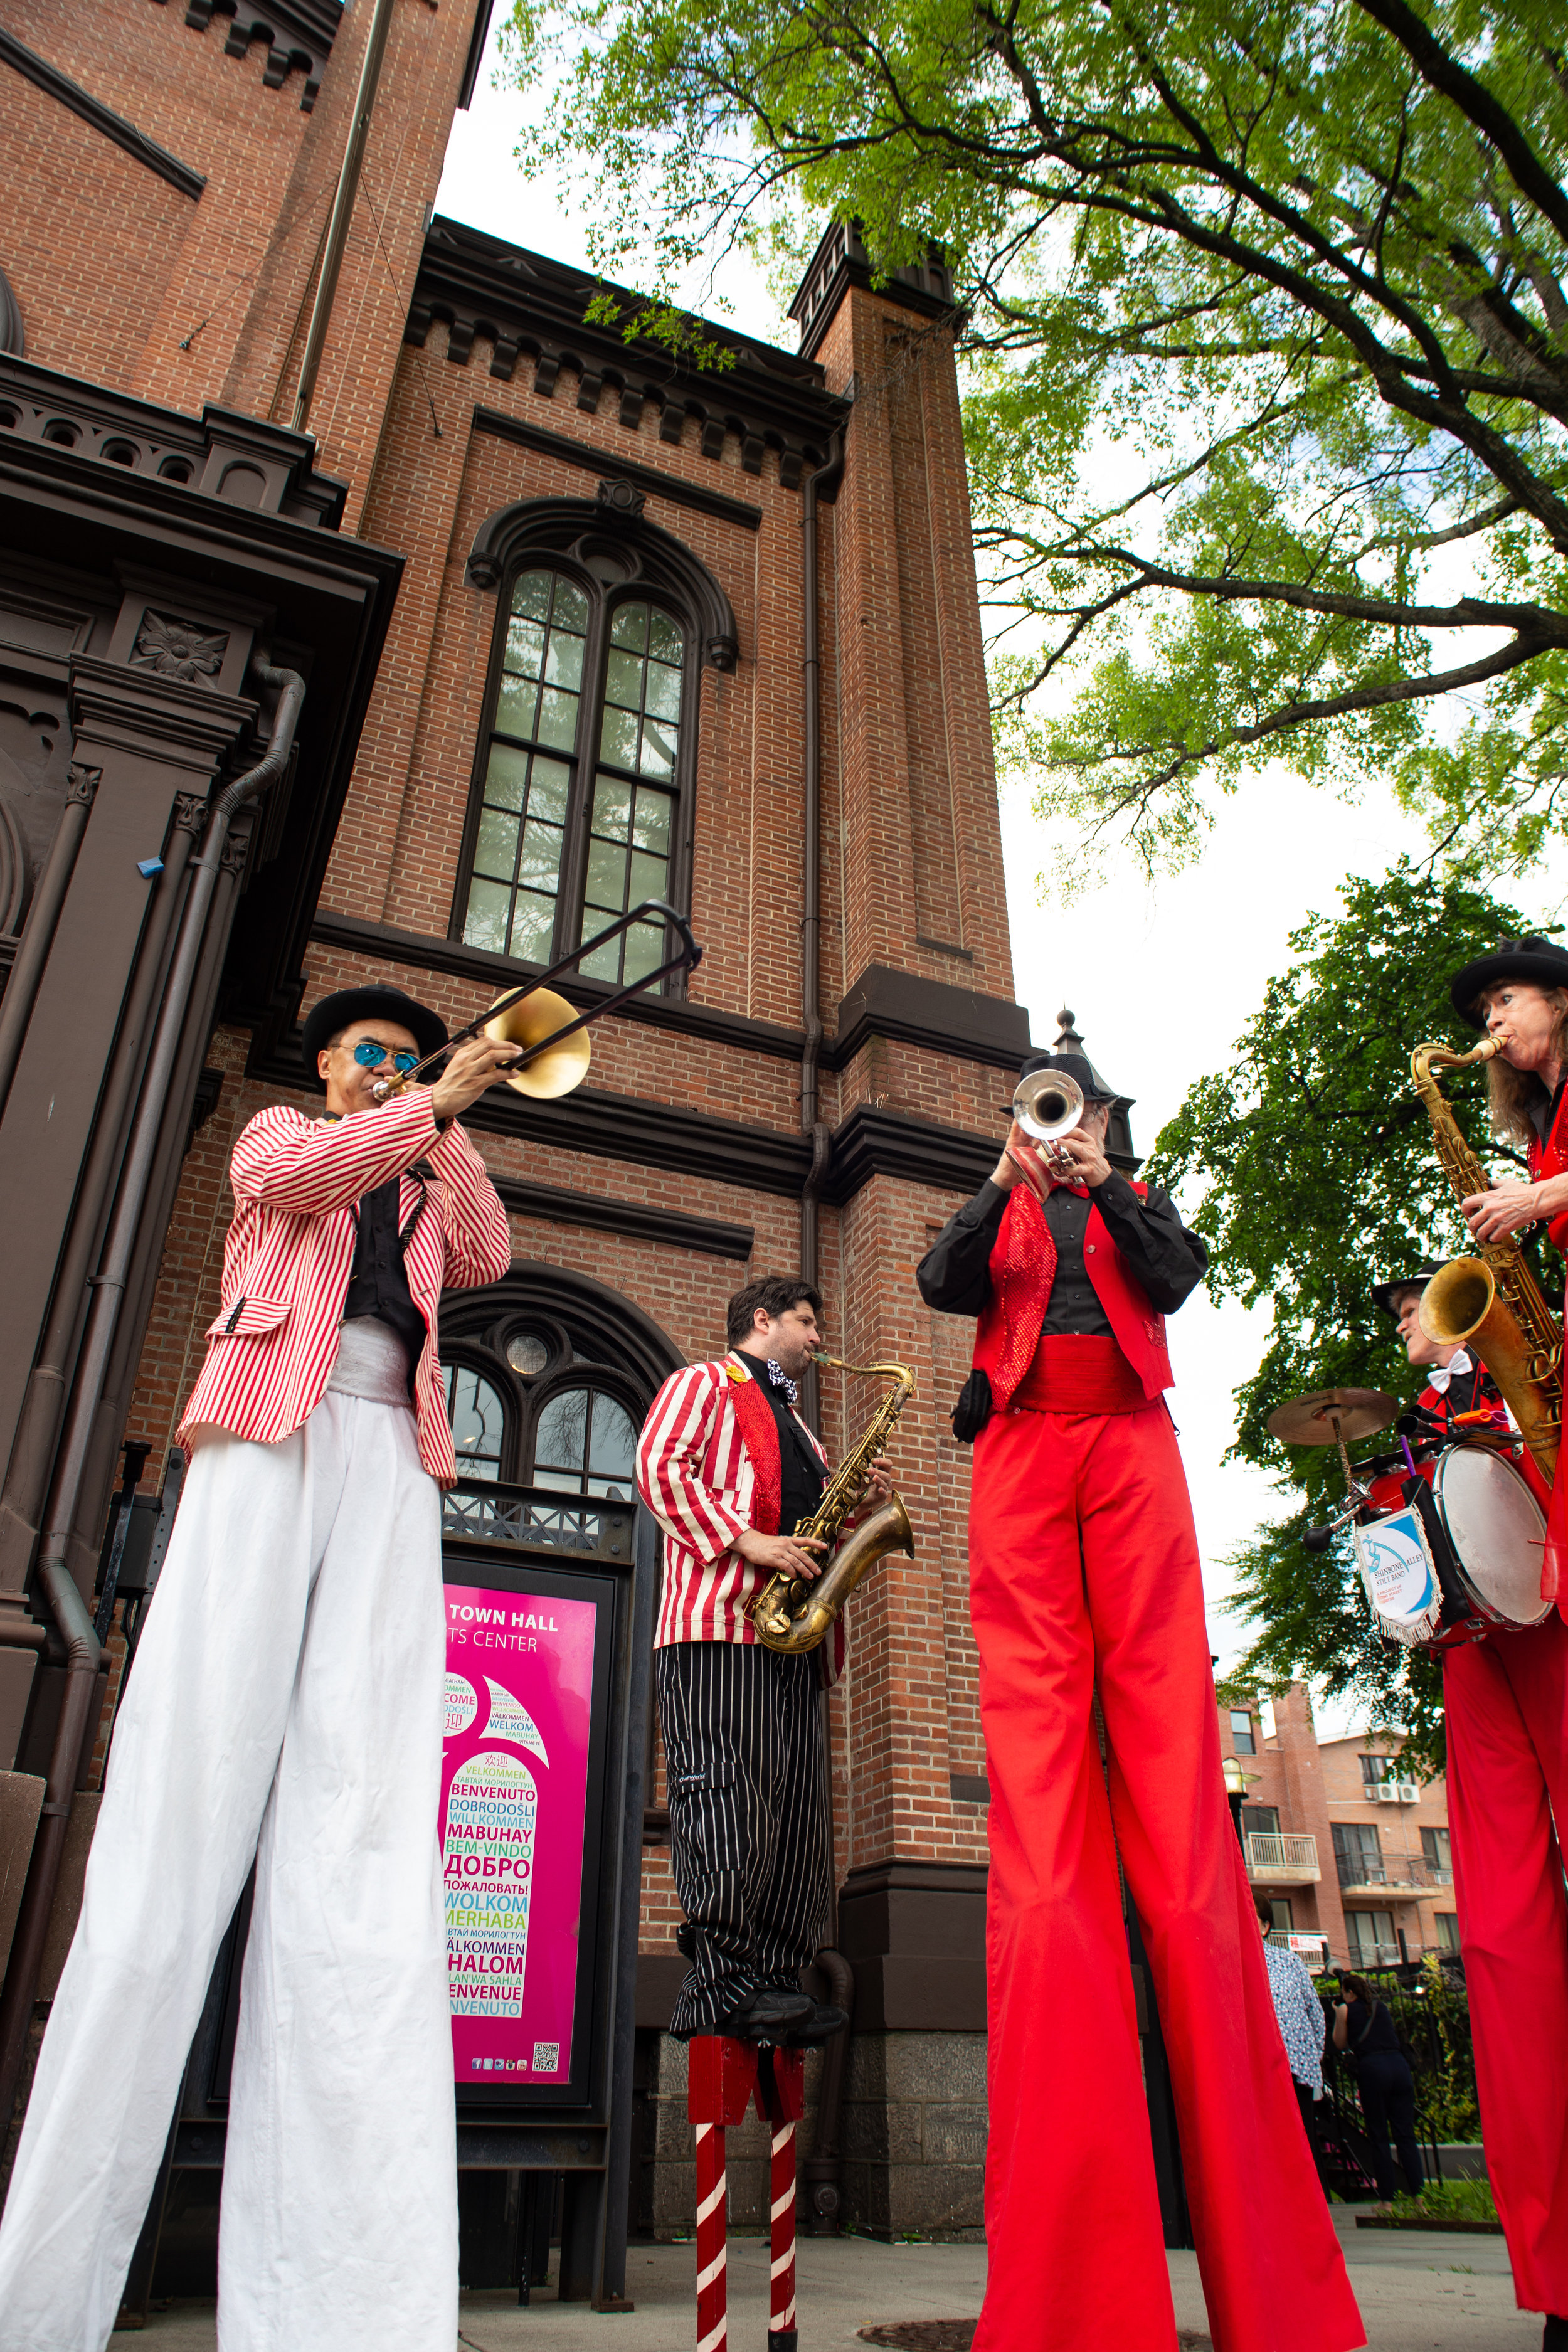 Flushing Town Hall held its 40th annual gala on June 6, 2019. Pictured is the Shinbone Alley Stilt Band, which greeted attendees as they arrived.